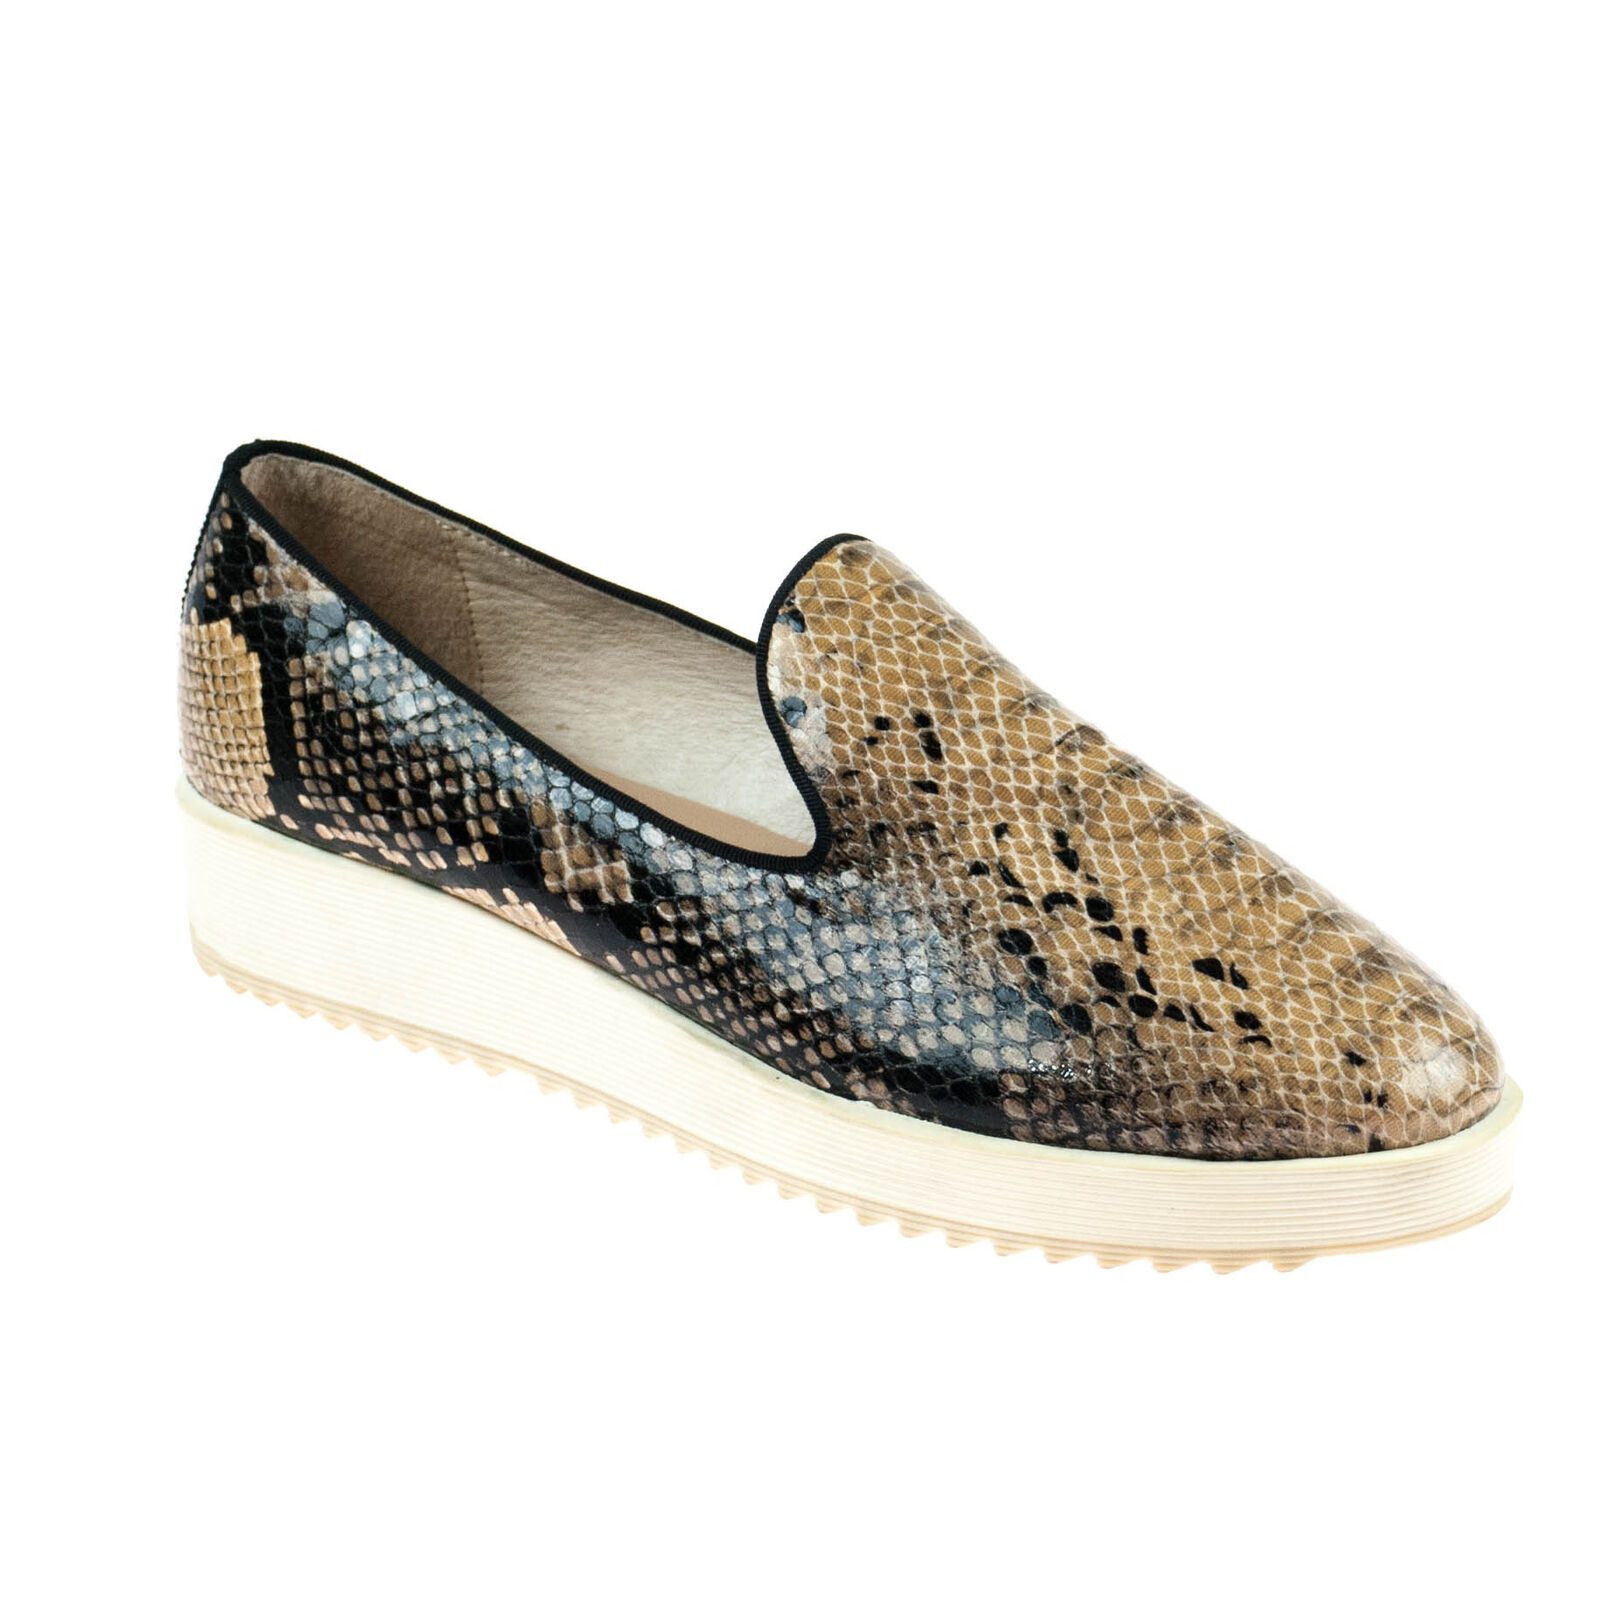 Bibi LOU Donna Scarpa Mezza Slipper Pelle Marrone Nero serpenti pattern dimensioni 41